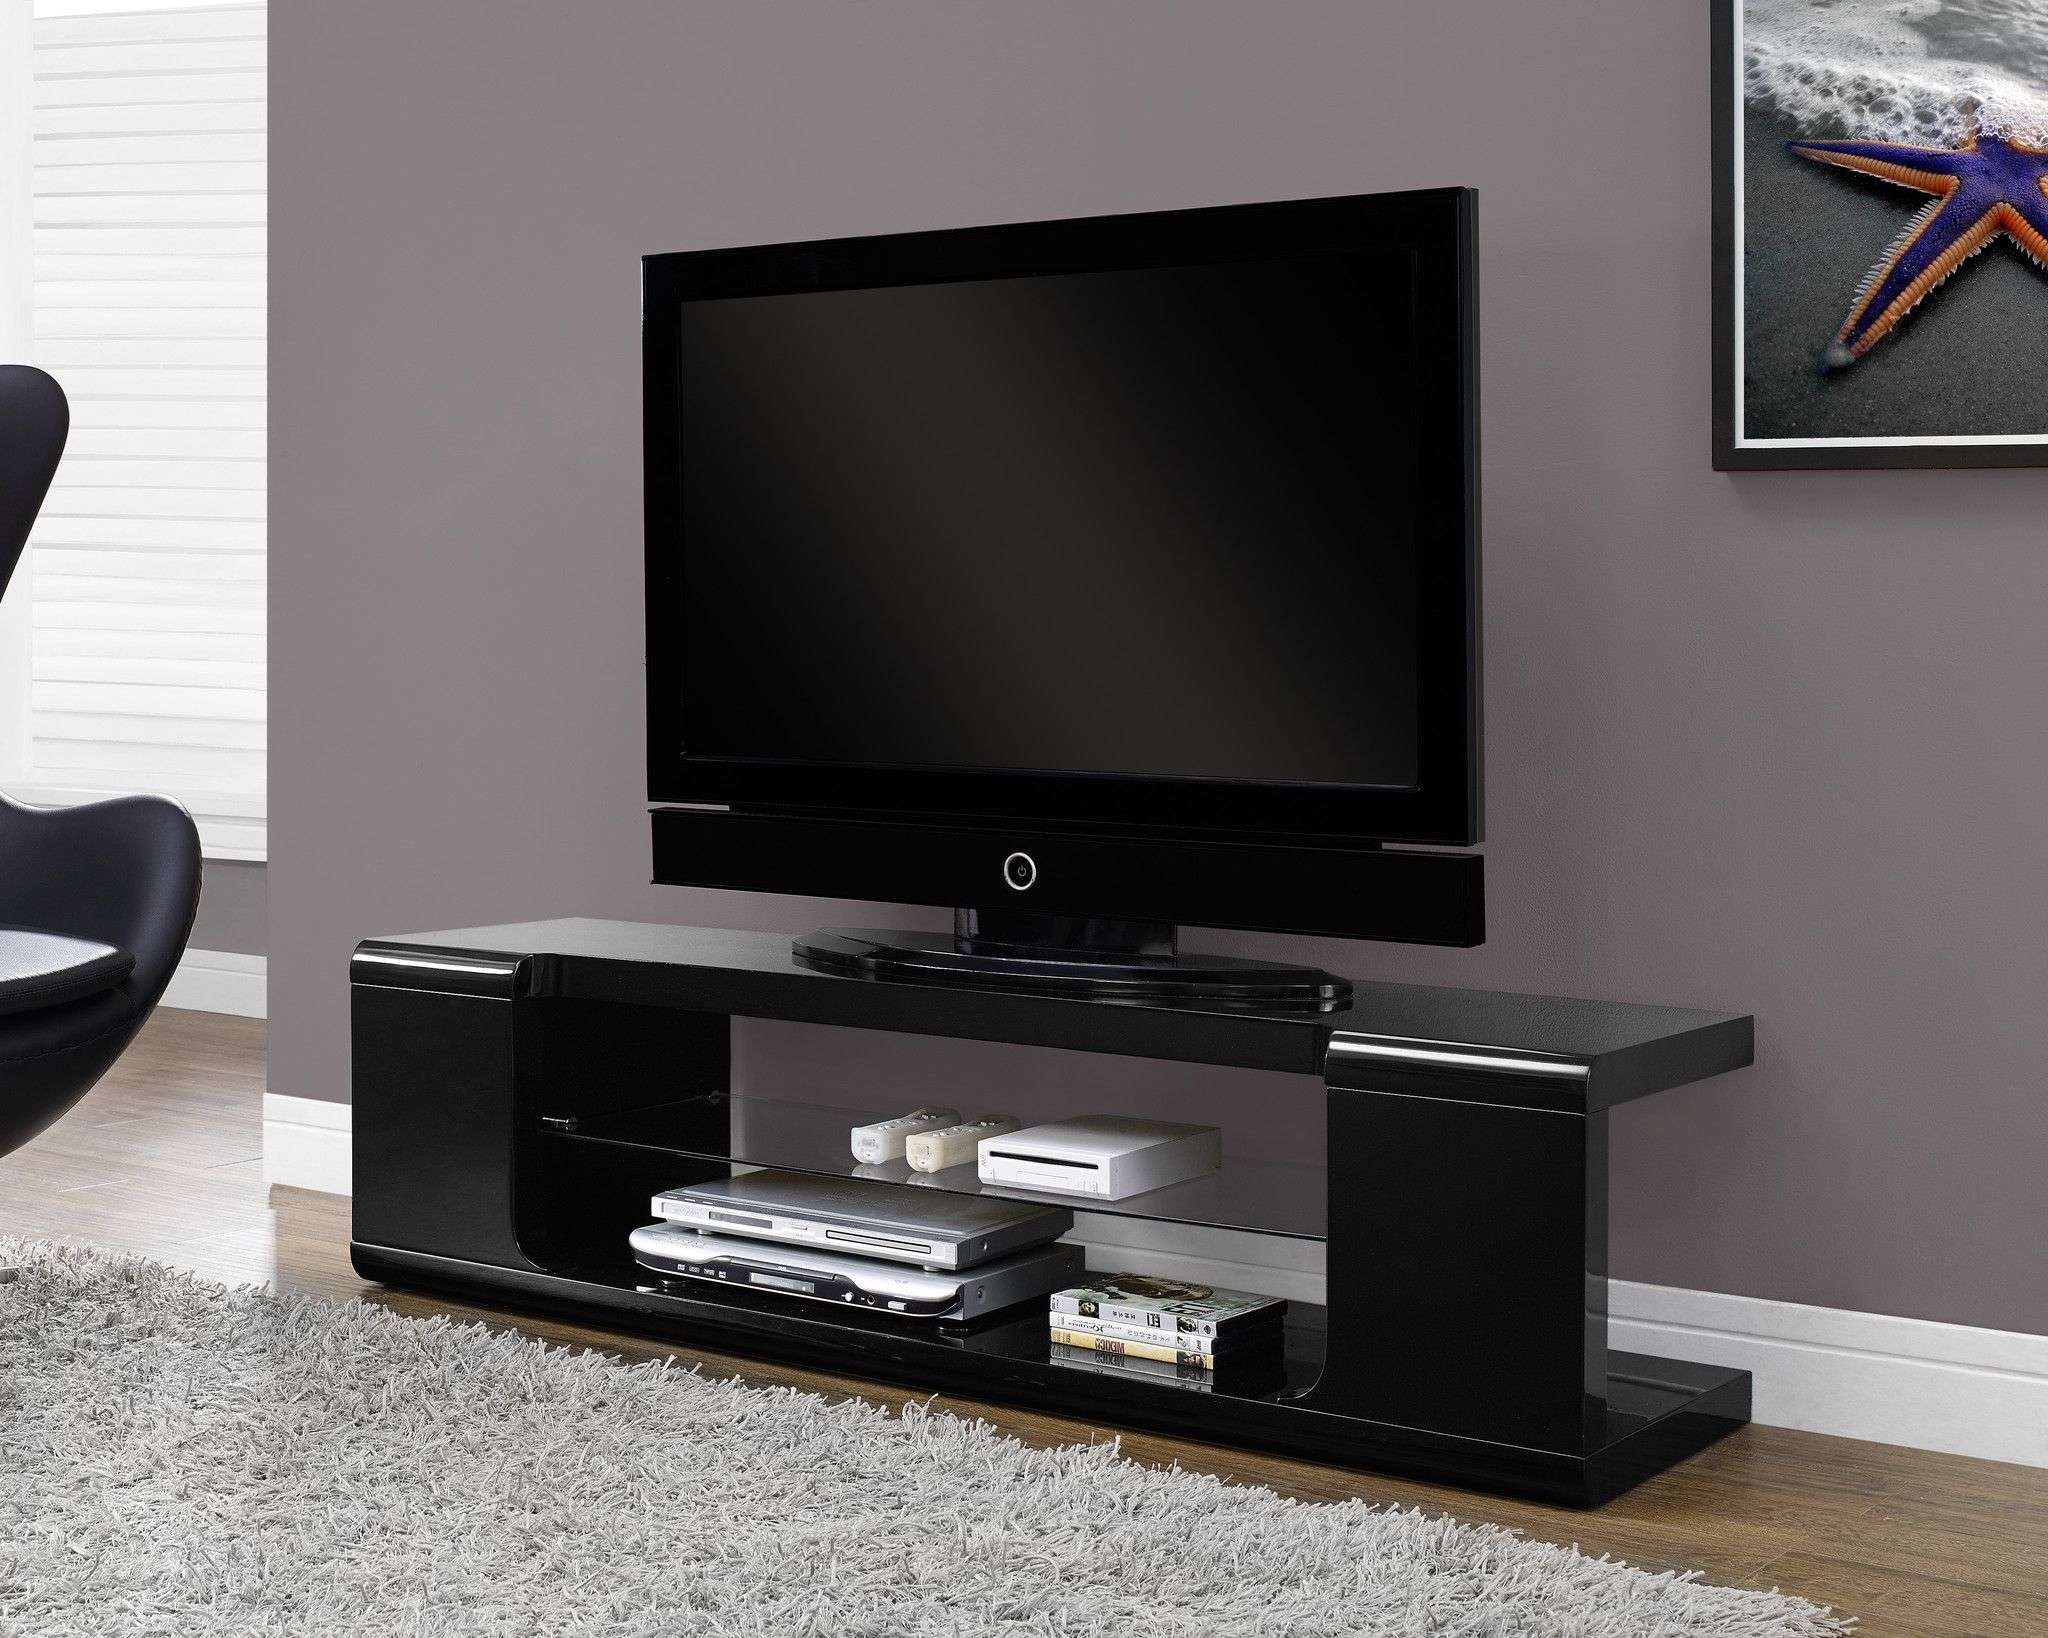 Tv Stand With Rounded Corners 36 With Tv Stand With Rounded With Tv Stands With Rounded Corners (View 11 of 15)